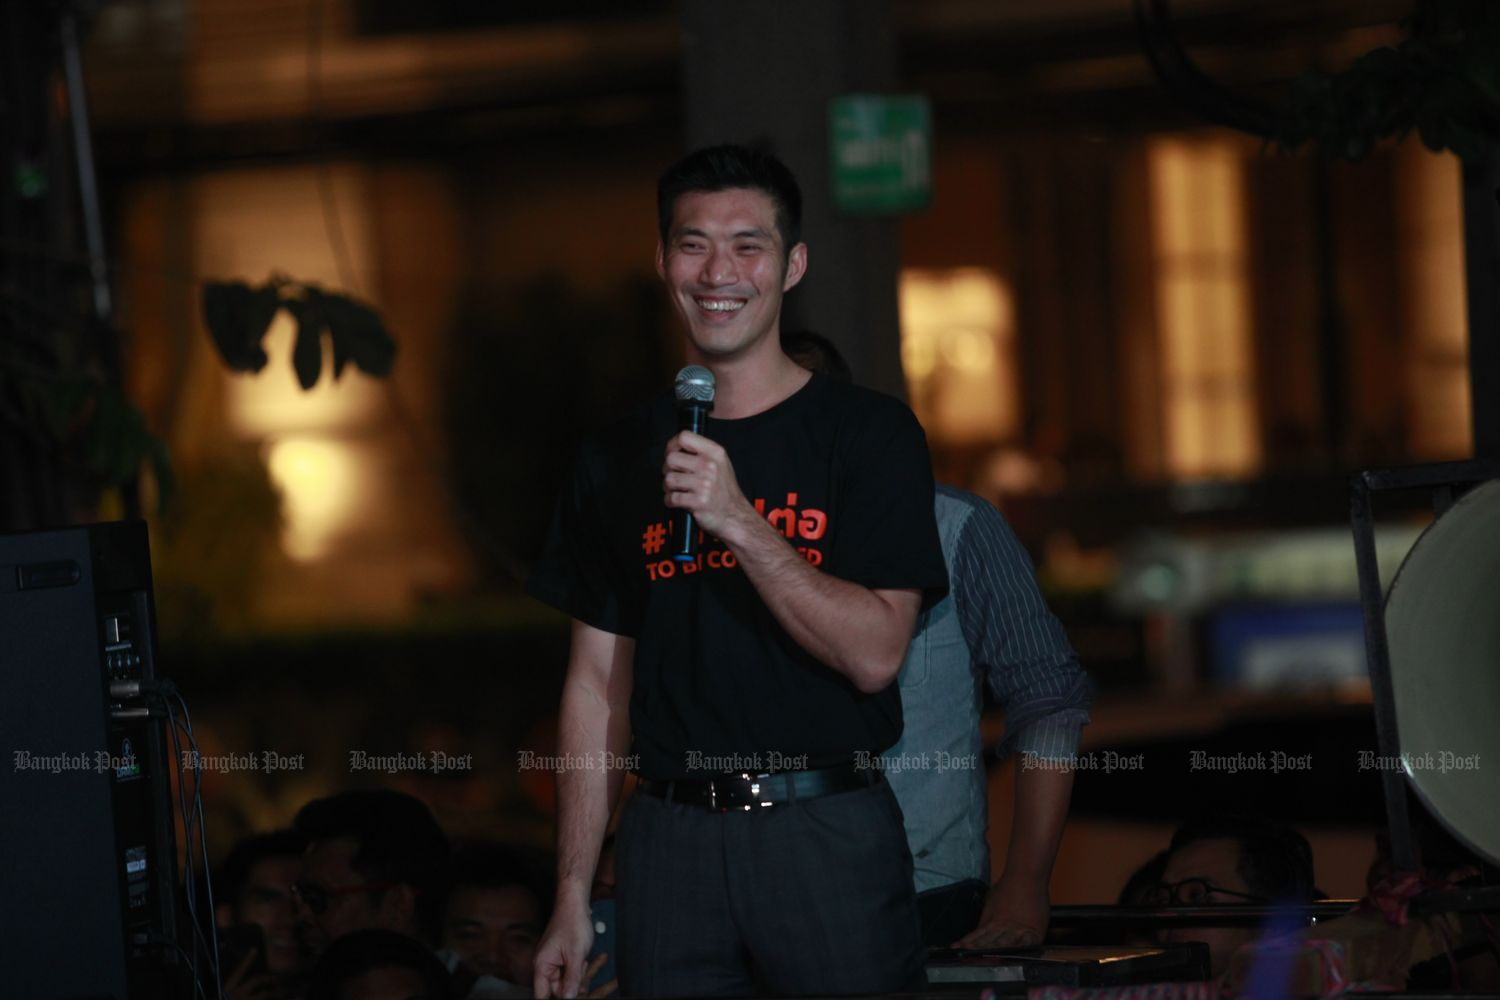 Thanathorn Juangroongruangkit, leader of the dissolved Future Forward Party, addresses his supporters near Thai Summit Tower in Bangkok shortly after midnight of Feb 21. He announced the Future Forward Movement after the Constitutional Court's dissolution of the party. (Photo by Nutthawat Wicheanbut)